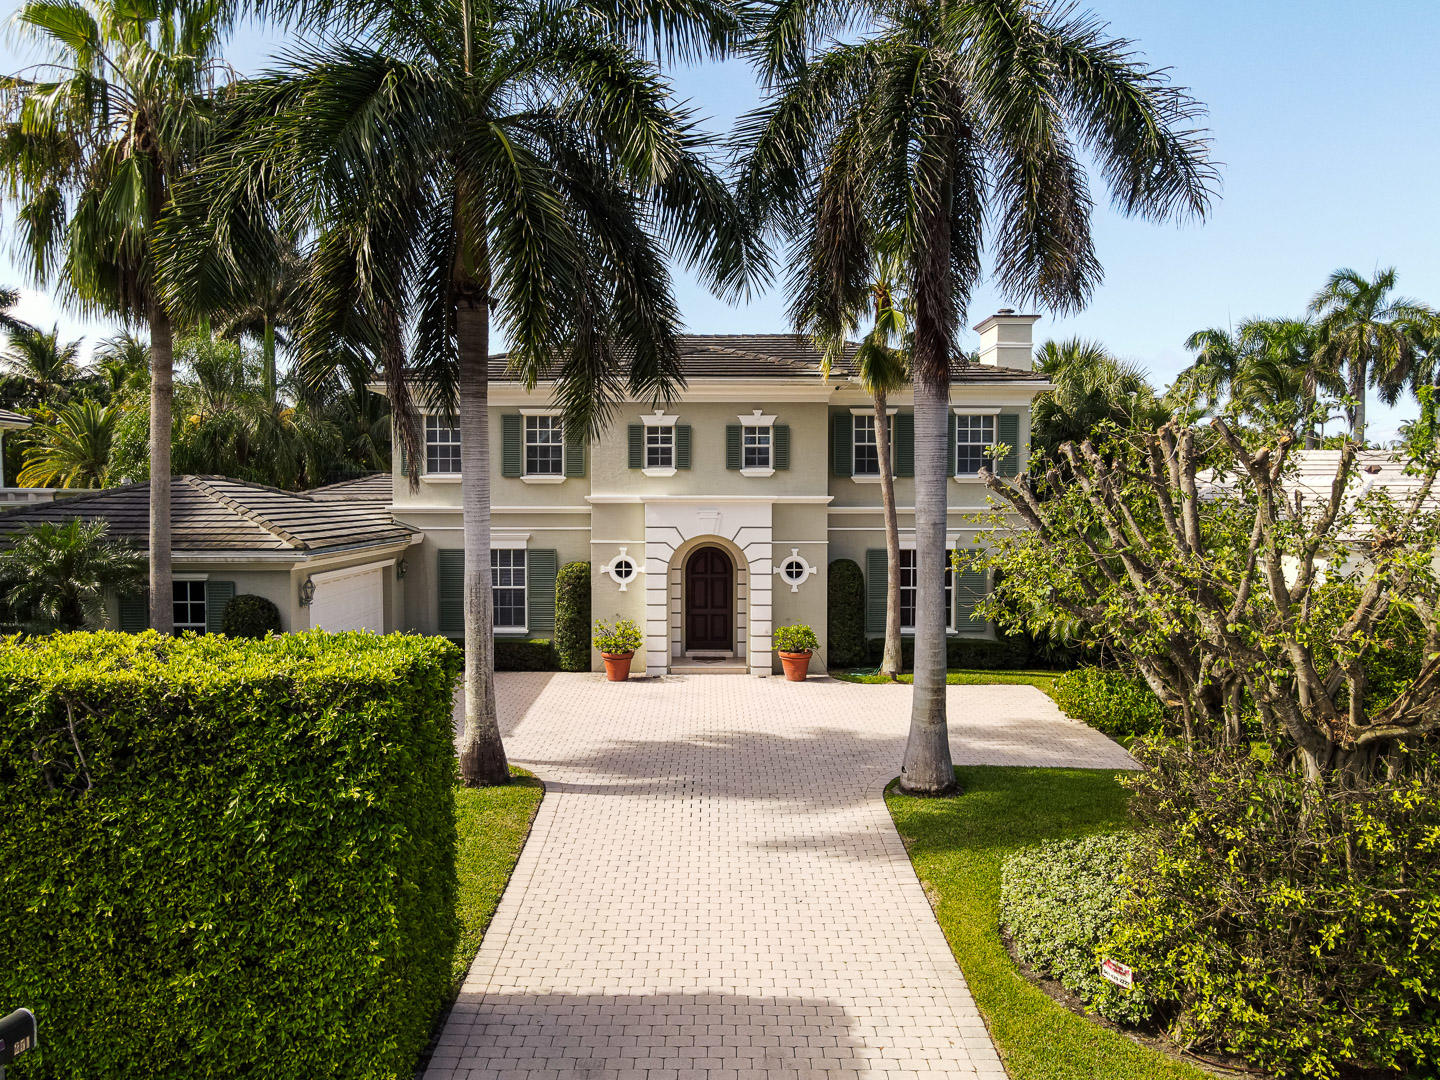 Palm Beach, Florida 33480, 4 Bedrooms Bedrooms, ,5 BathroomsBathrooms,Residential,For Sale,Tangier,RX-10643284